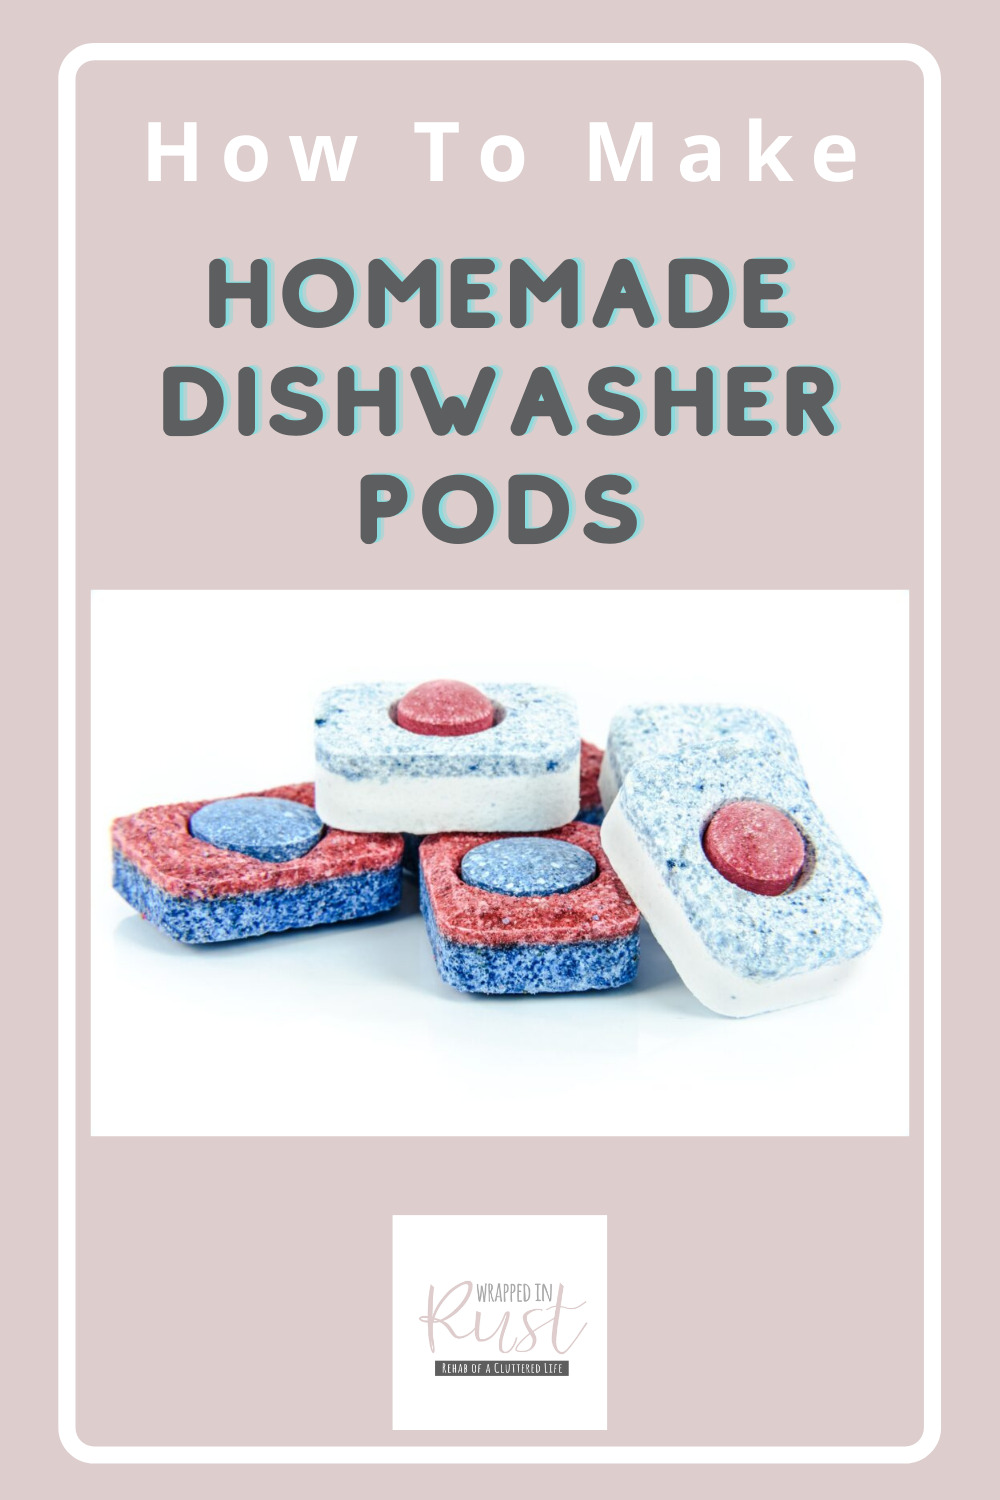 Wrappedinrust.com has creative and effective cleaning solutions for any surface! Save money by making your own cleaning products. Find out how to make DIY dishwasher pods today!